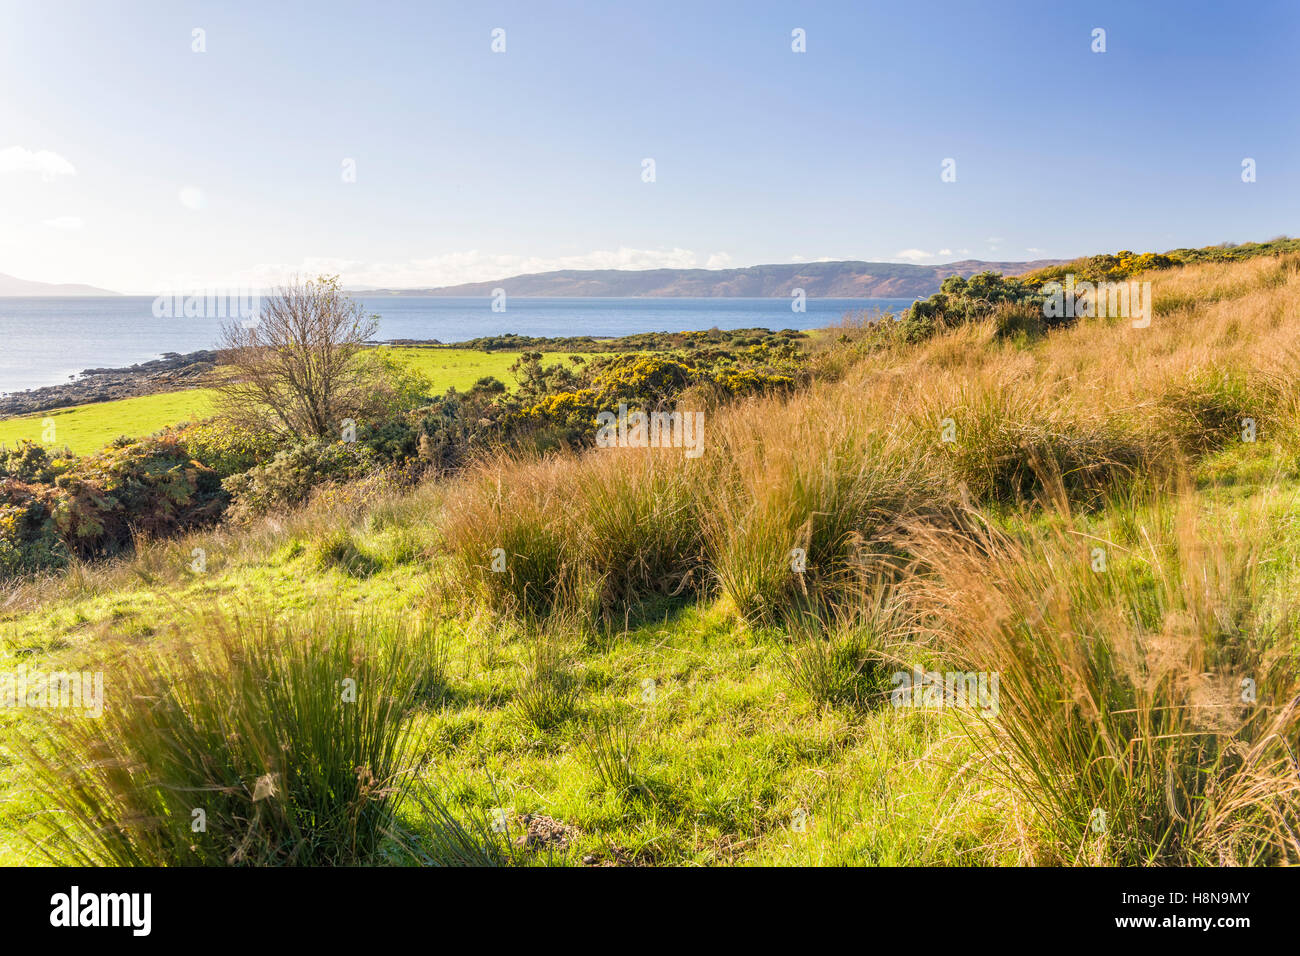 Scottish landscape scenic with vibrant grass field with sea and hills in the background  Model Release: No.  Property - Stock Image